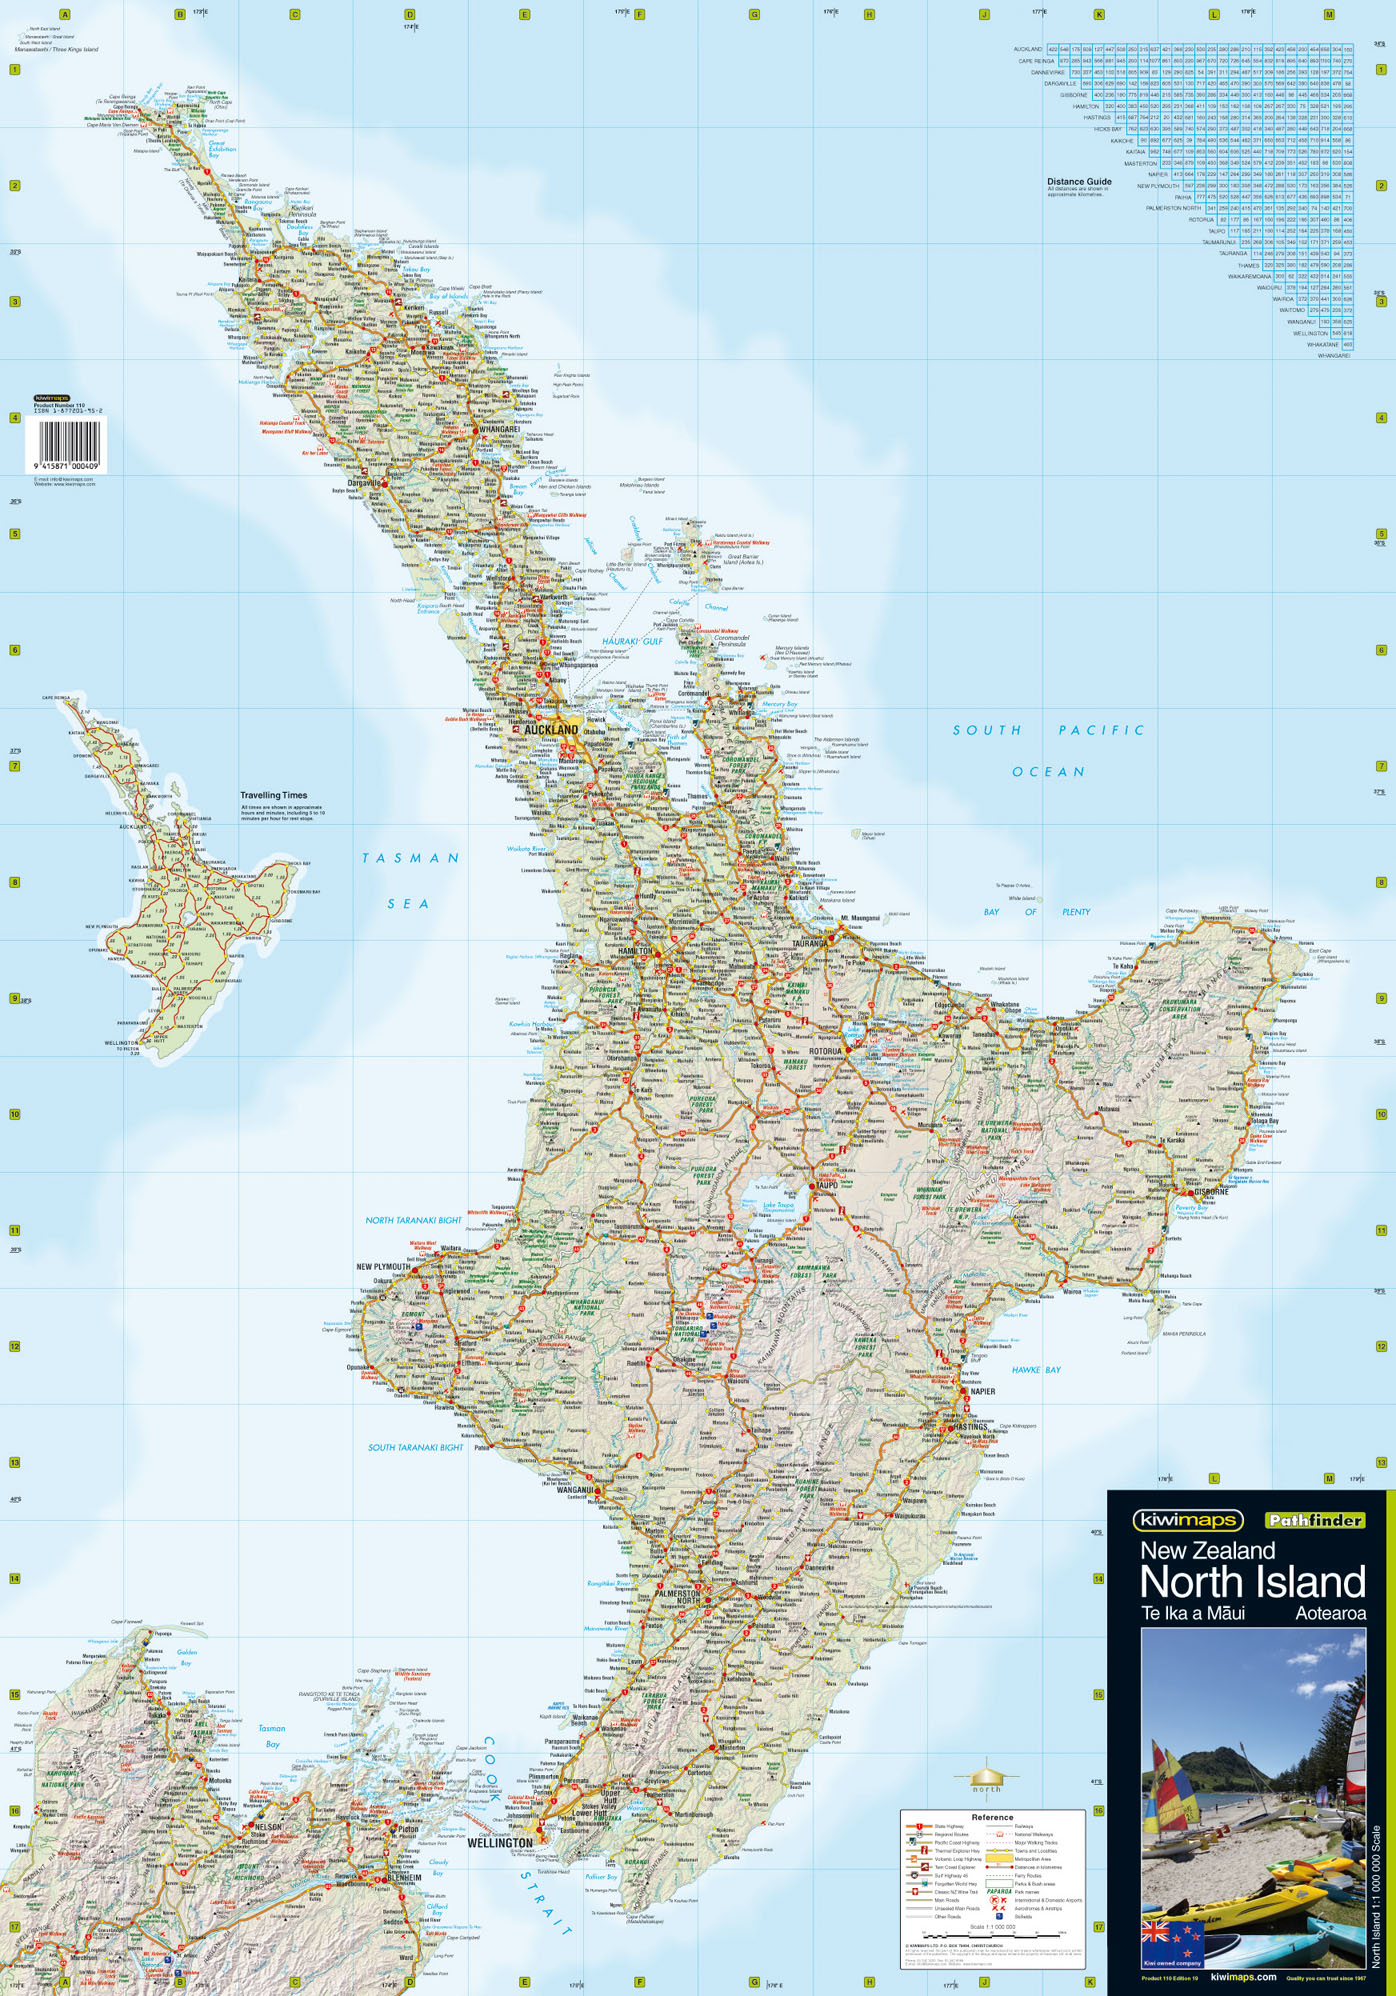 Map Of New Zealand North Island.North Island Wall Maps